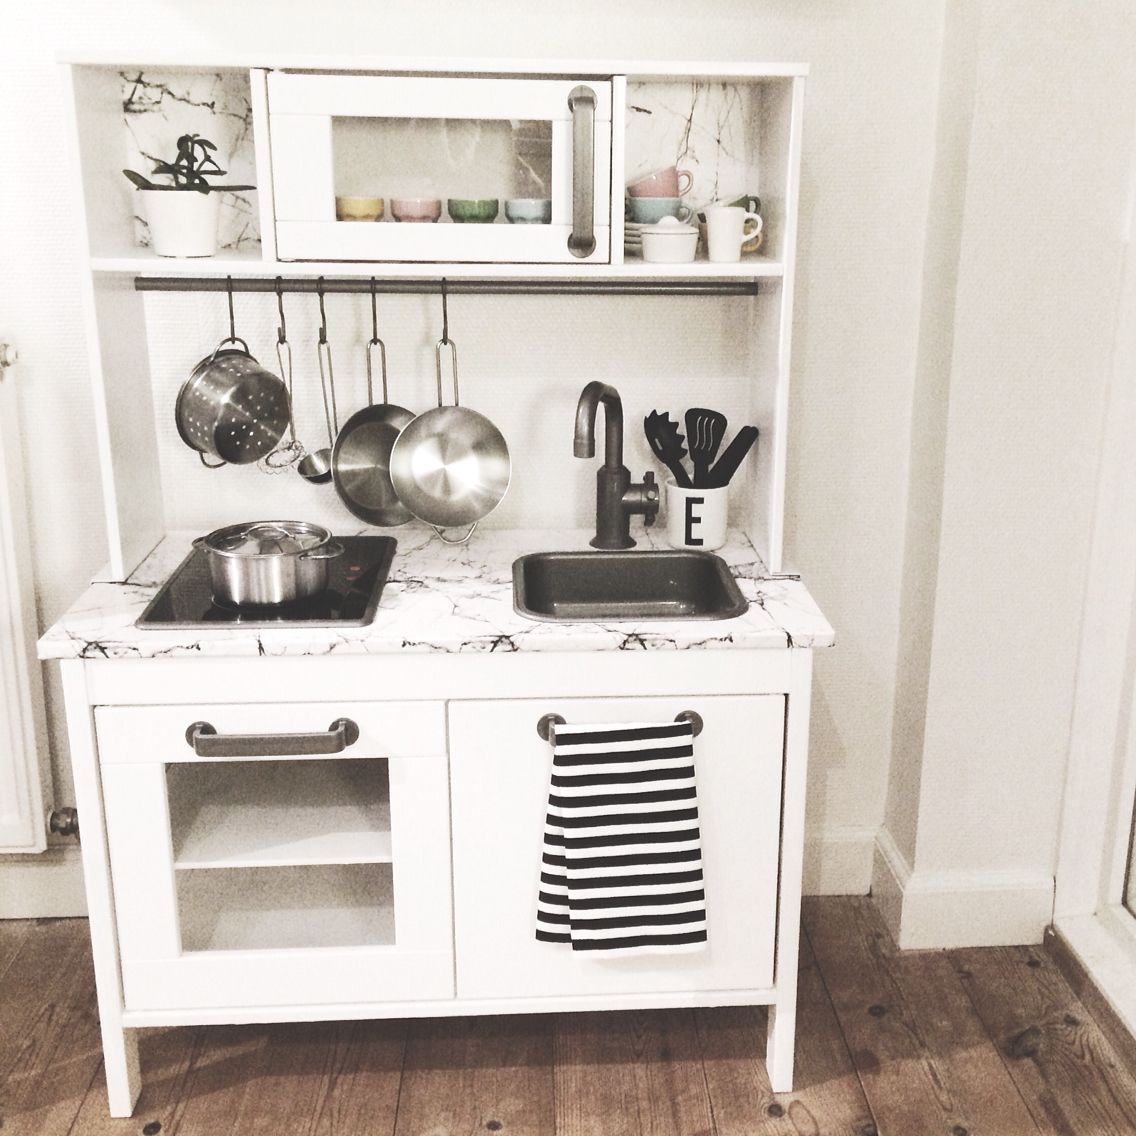 Küche Für Kinder Ikea Ikea Duktig Kitchen Diy Ikeahack My Home